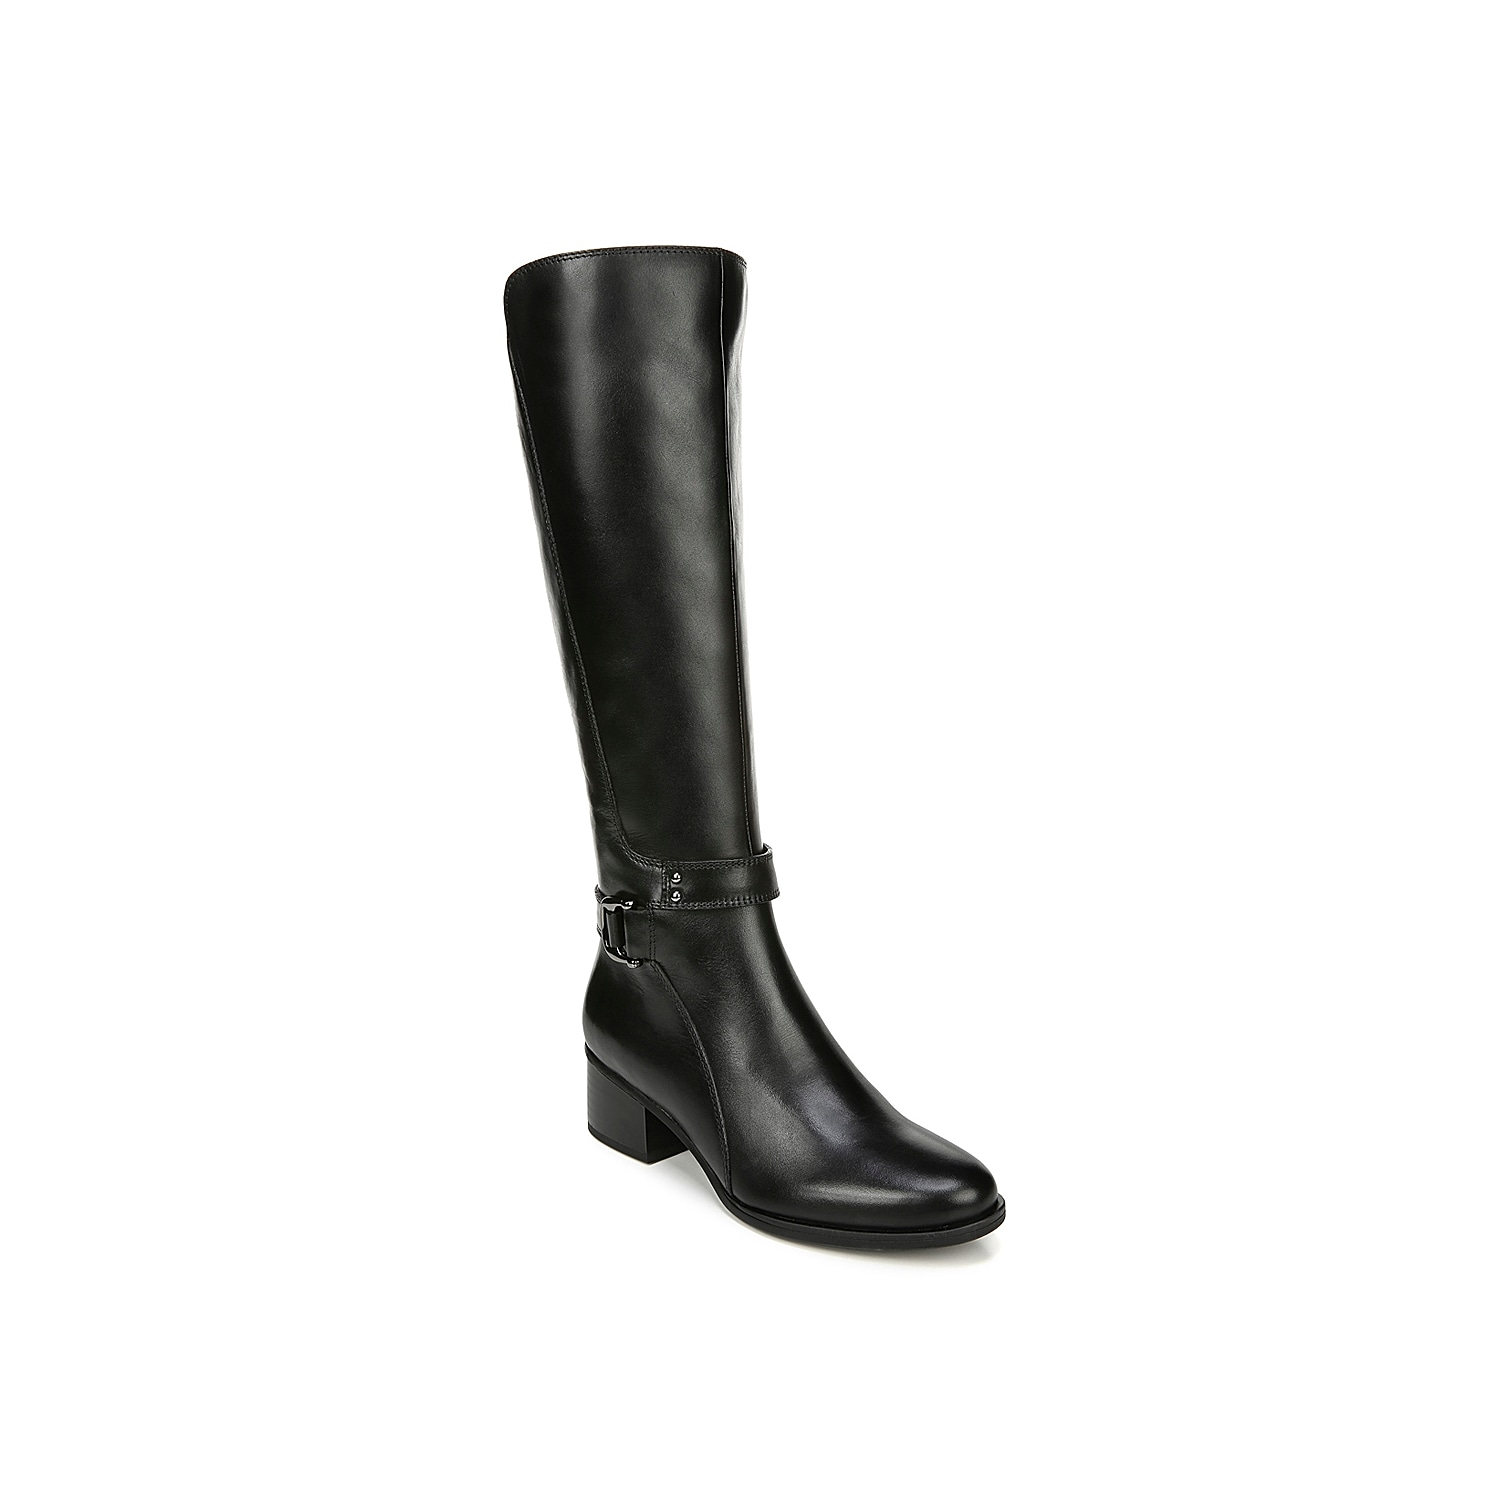 The Koka riding boot from Naturalizer will lend a refined feel to any outfit. These tall boots feature a buckle accent at the ankle and a stacked block heel for added height. Click here for Boot Measuring Guide.